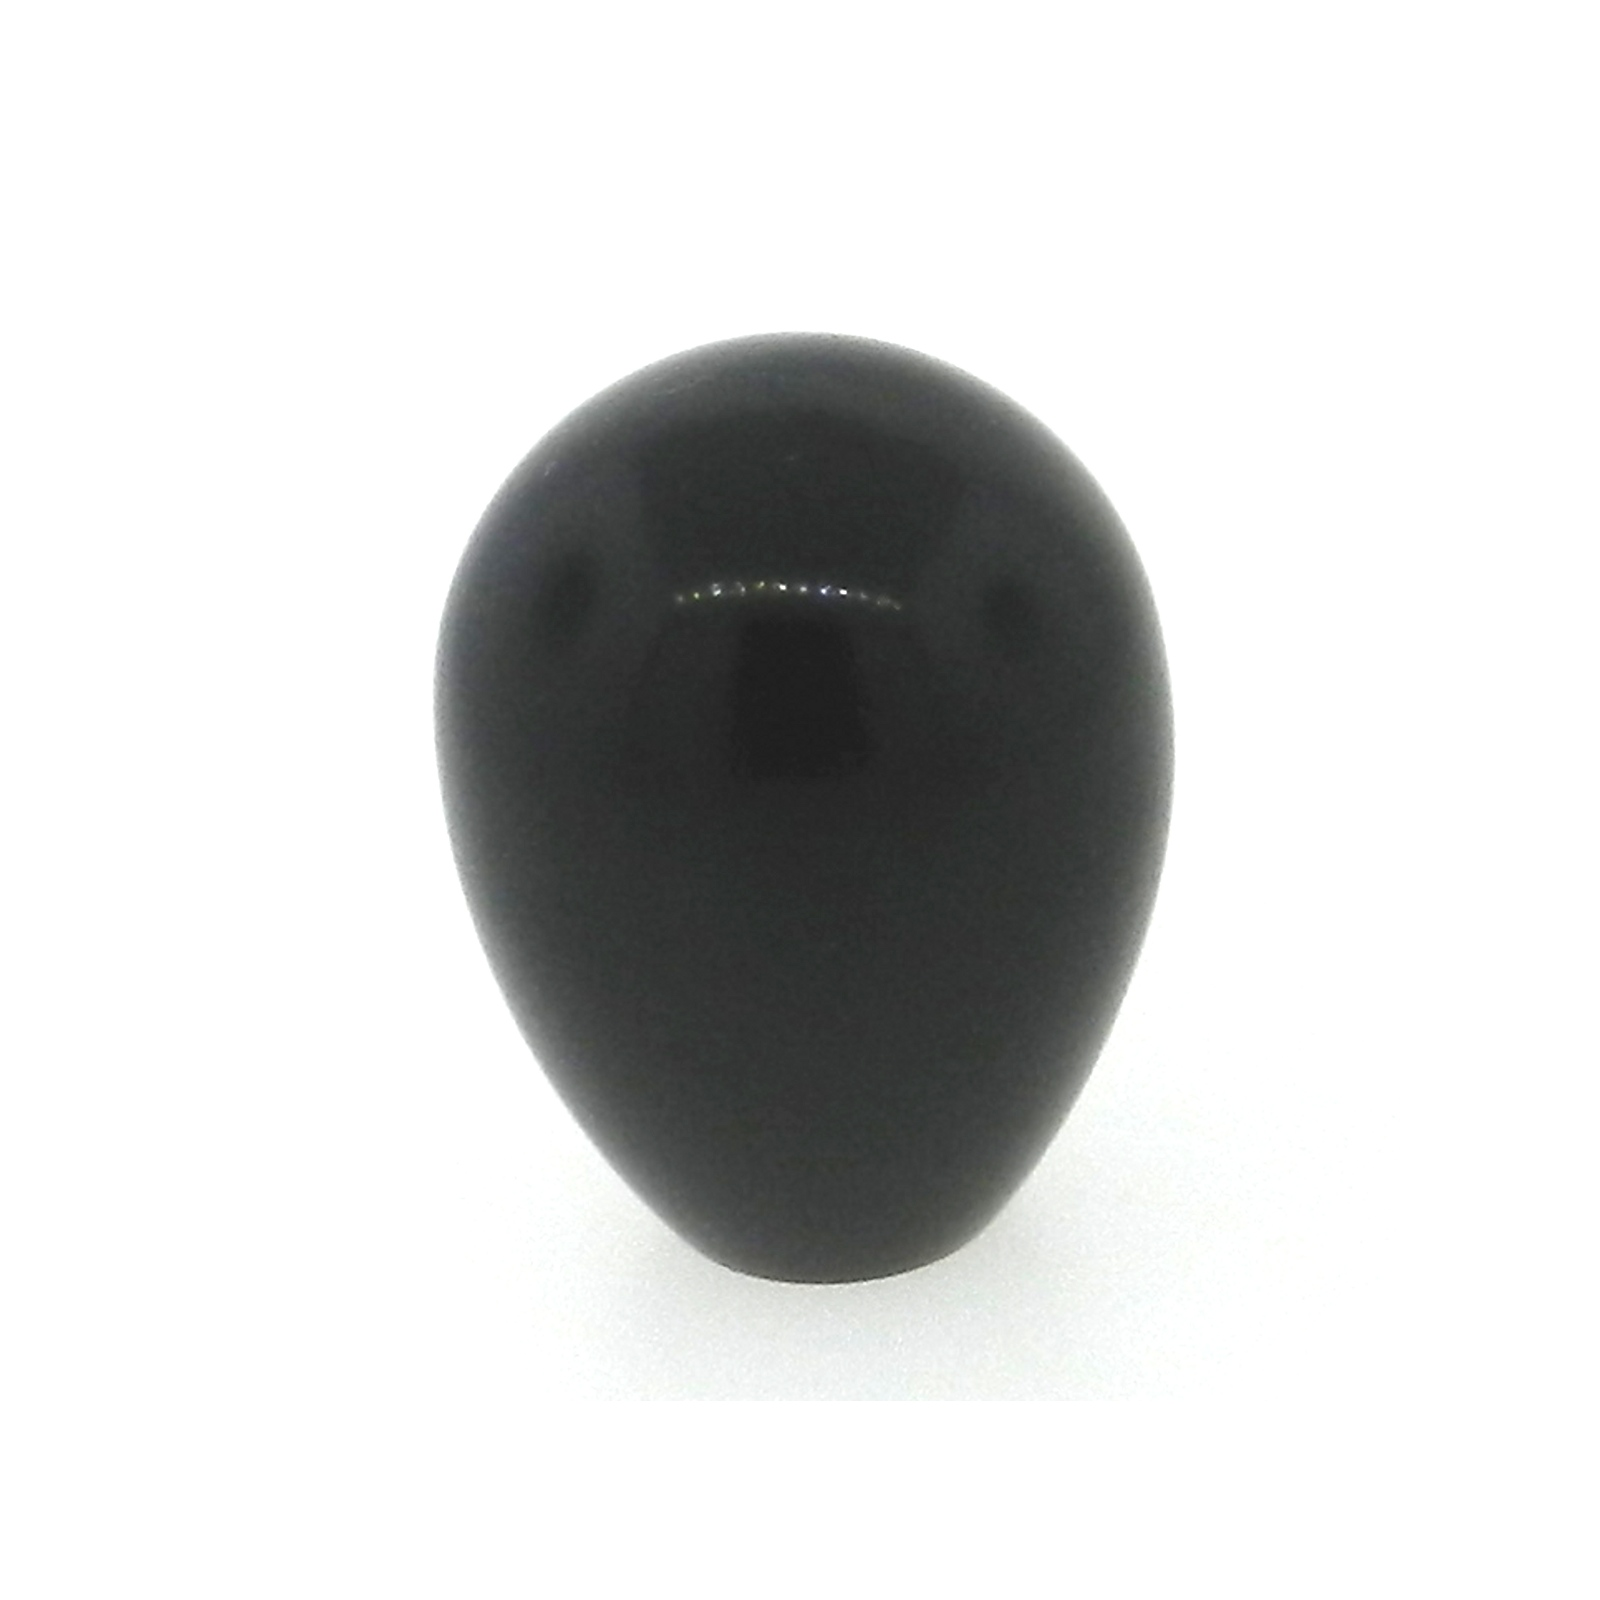 A phenolic polished oval knob with a tapped hole